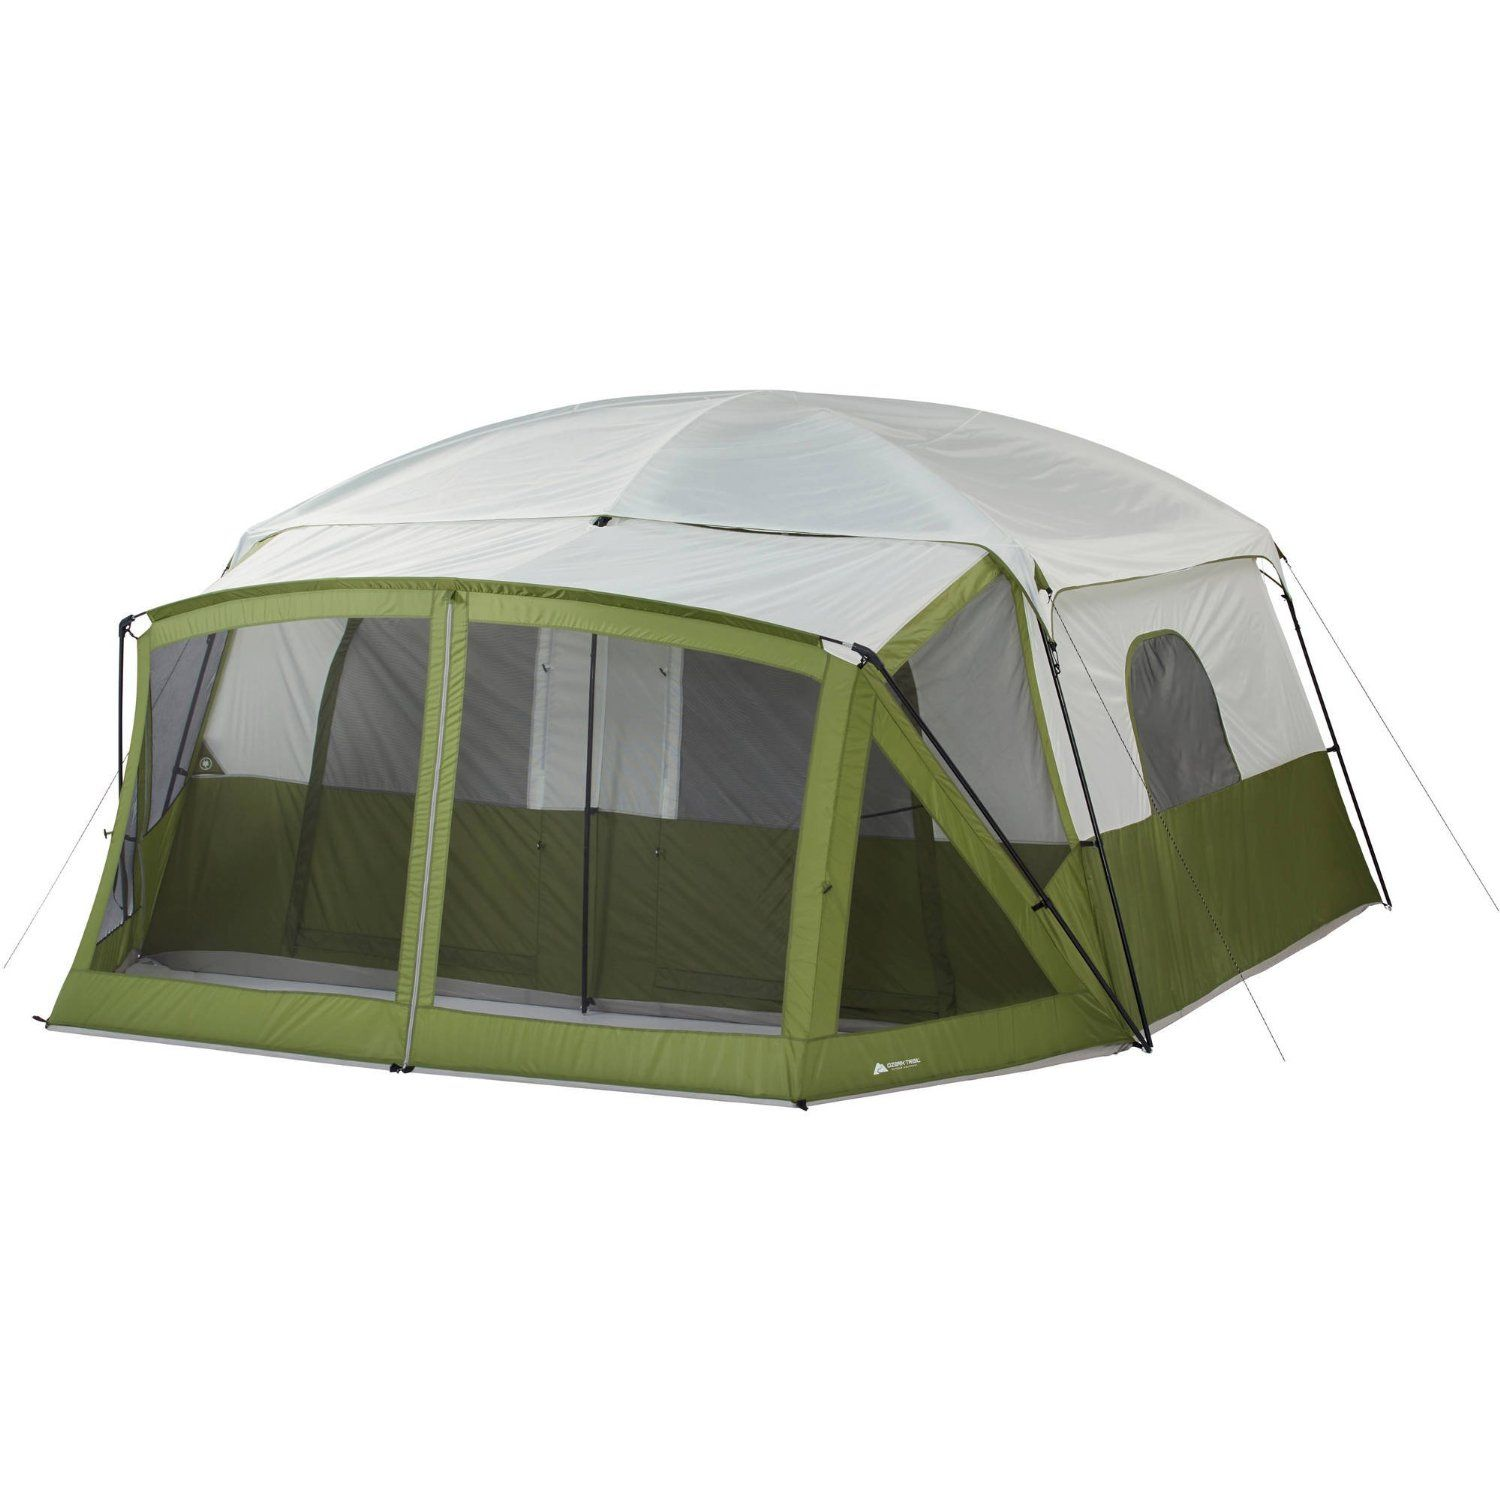 Amazon Com Ozark Trail 12 Person Cabin Tent With Screen Porch Sports With Images Cabin Tent Tent 12 Person Tent